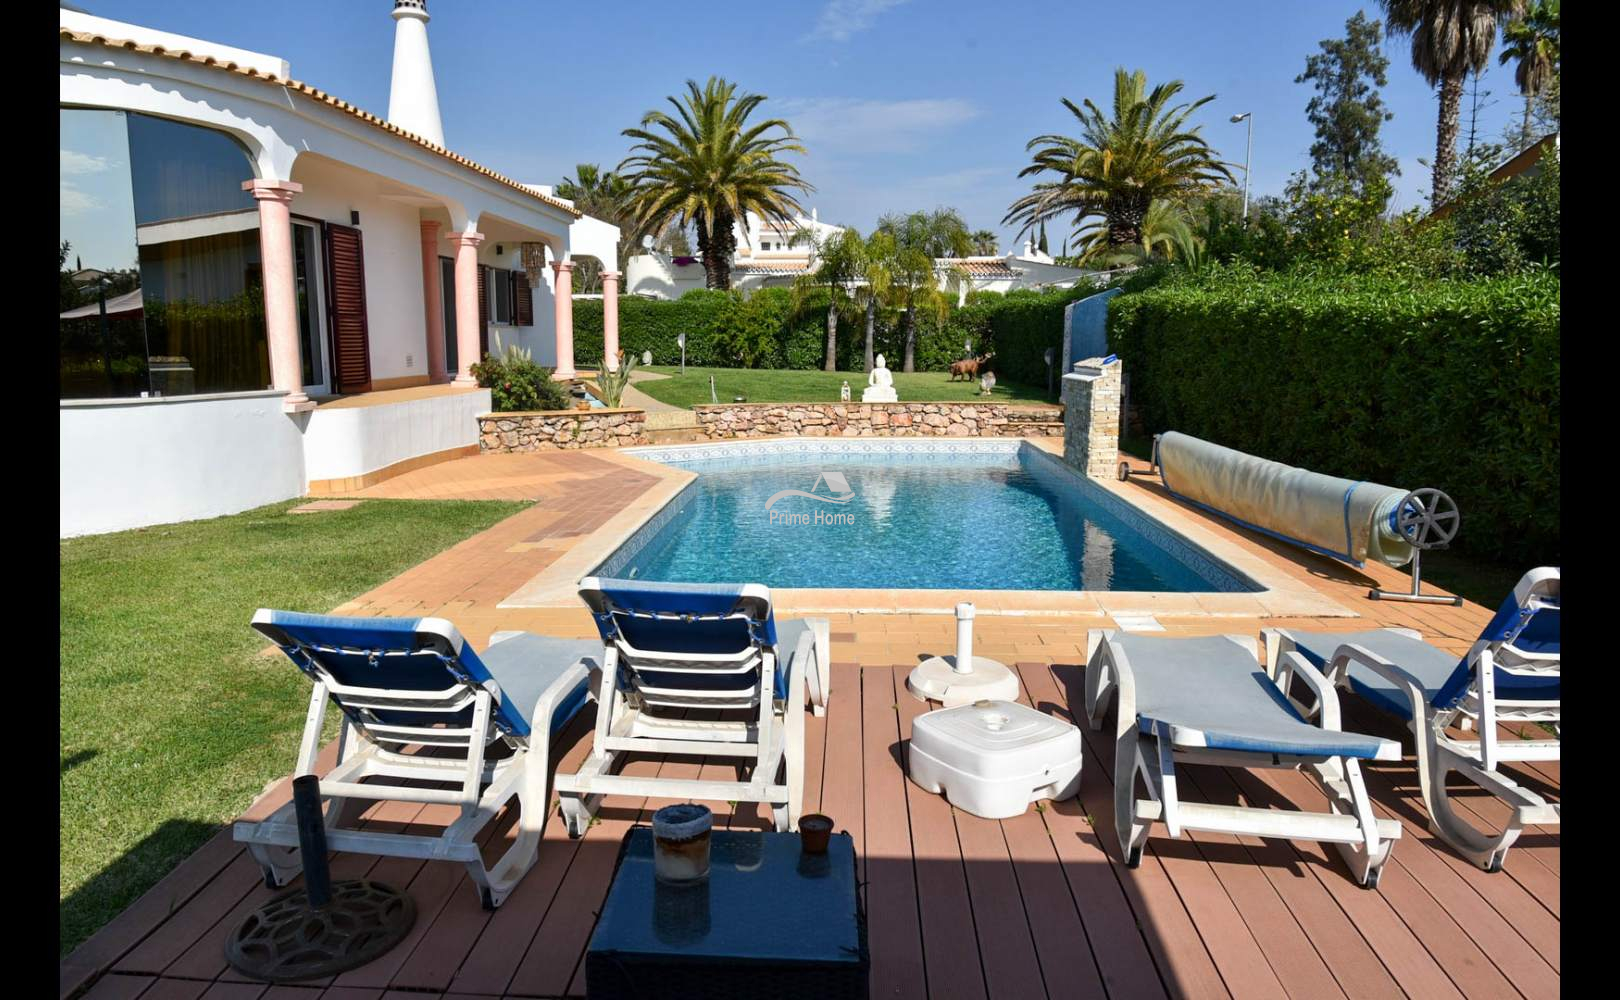 Charming 3 Bedroom Villa for sale in one of the best areas of Vilamoura (32)